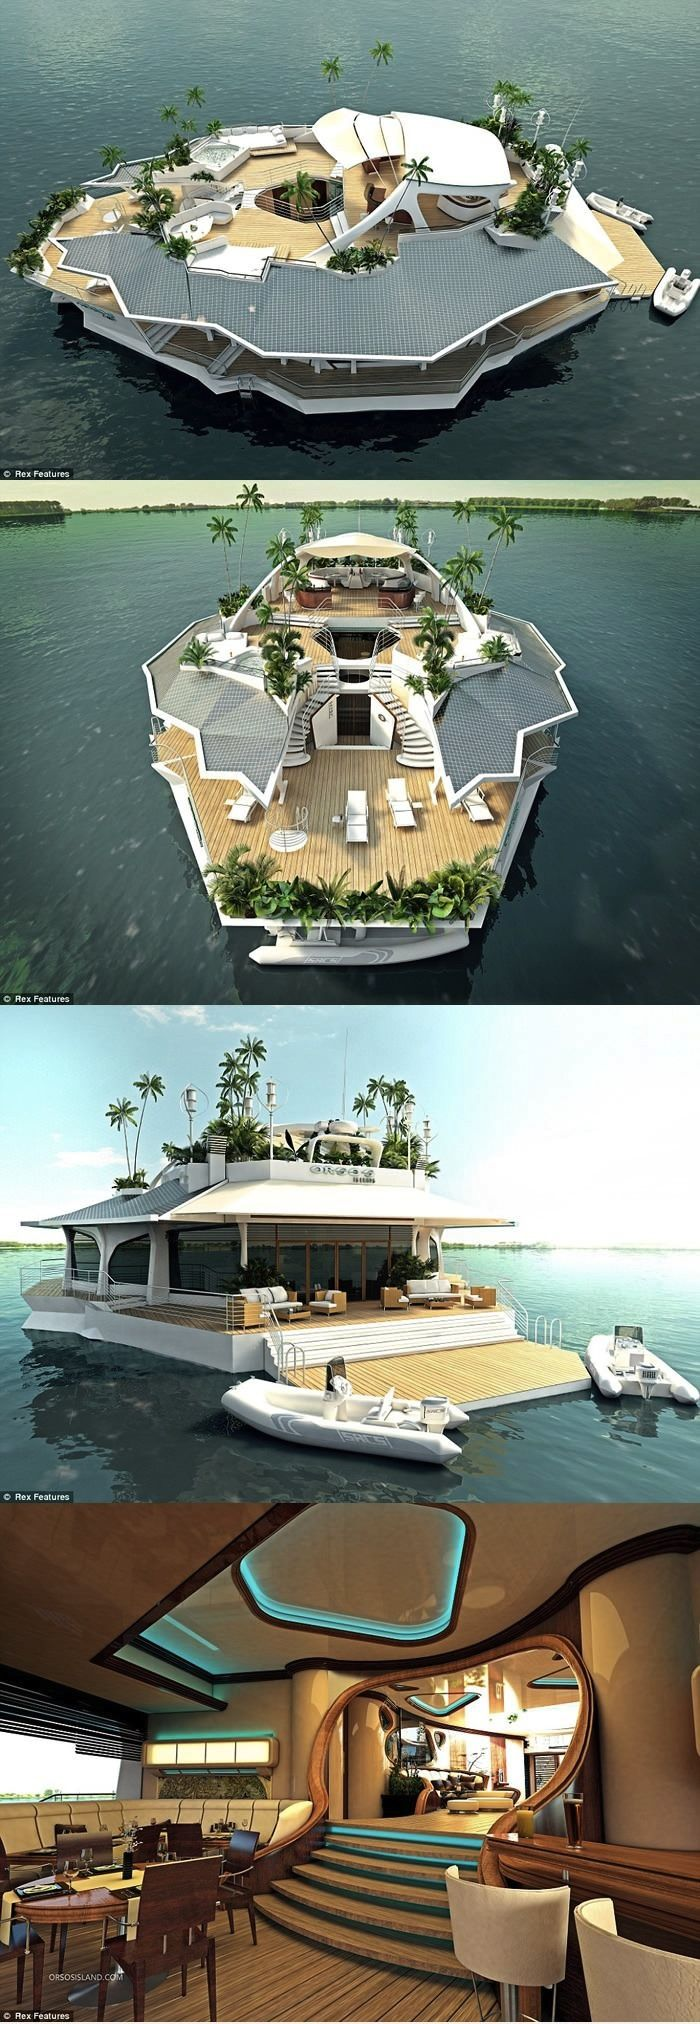 Floating Island Boat. #boats #coolboats Check out cool boating videos here: https://www.youtube.com/user/boatshowavenue/videos